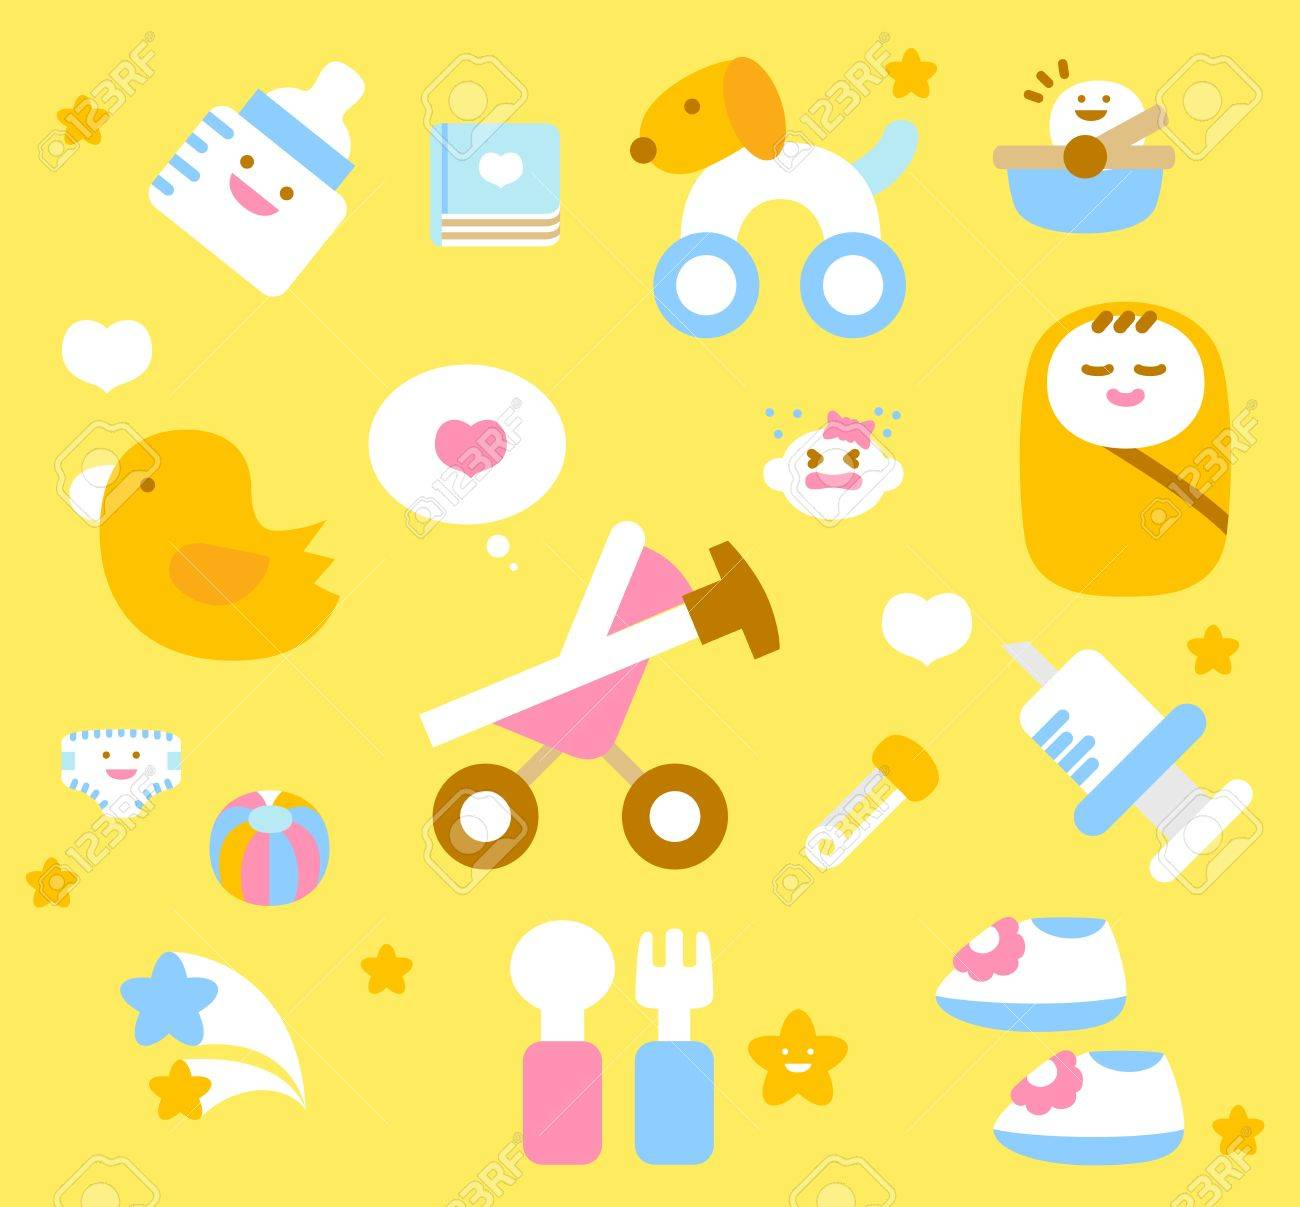 simple baby icon collection - 11904241